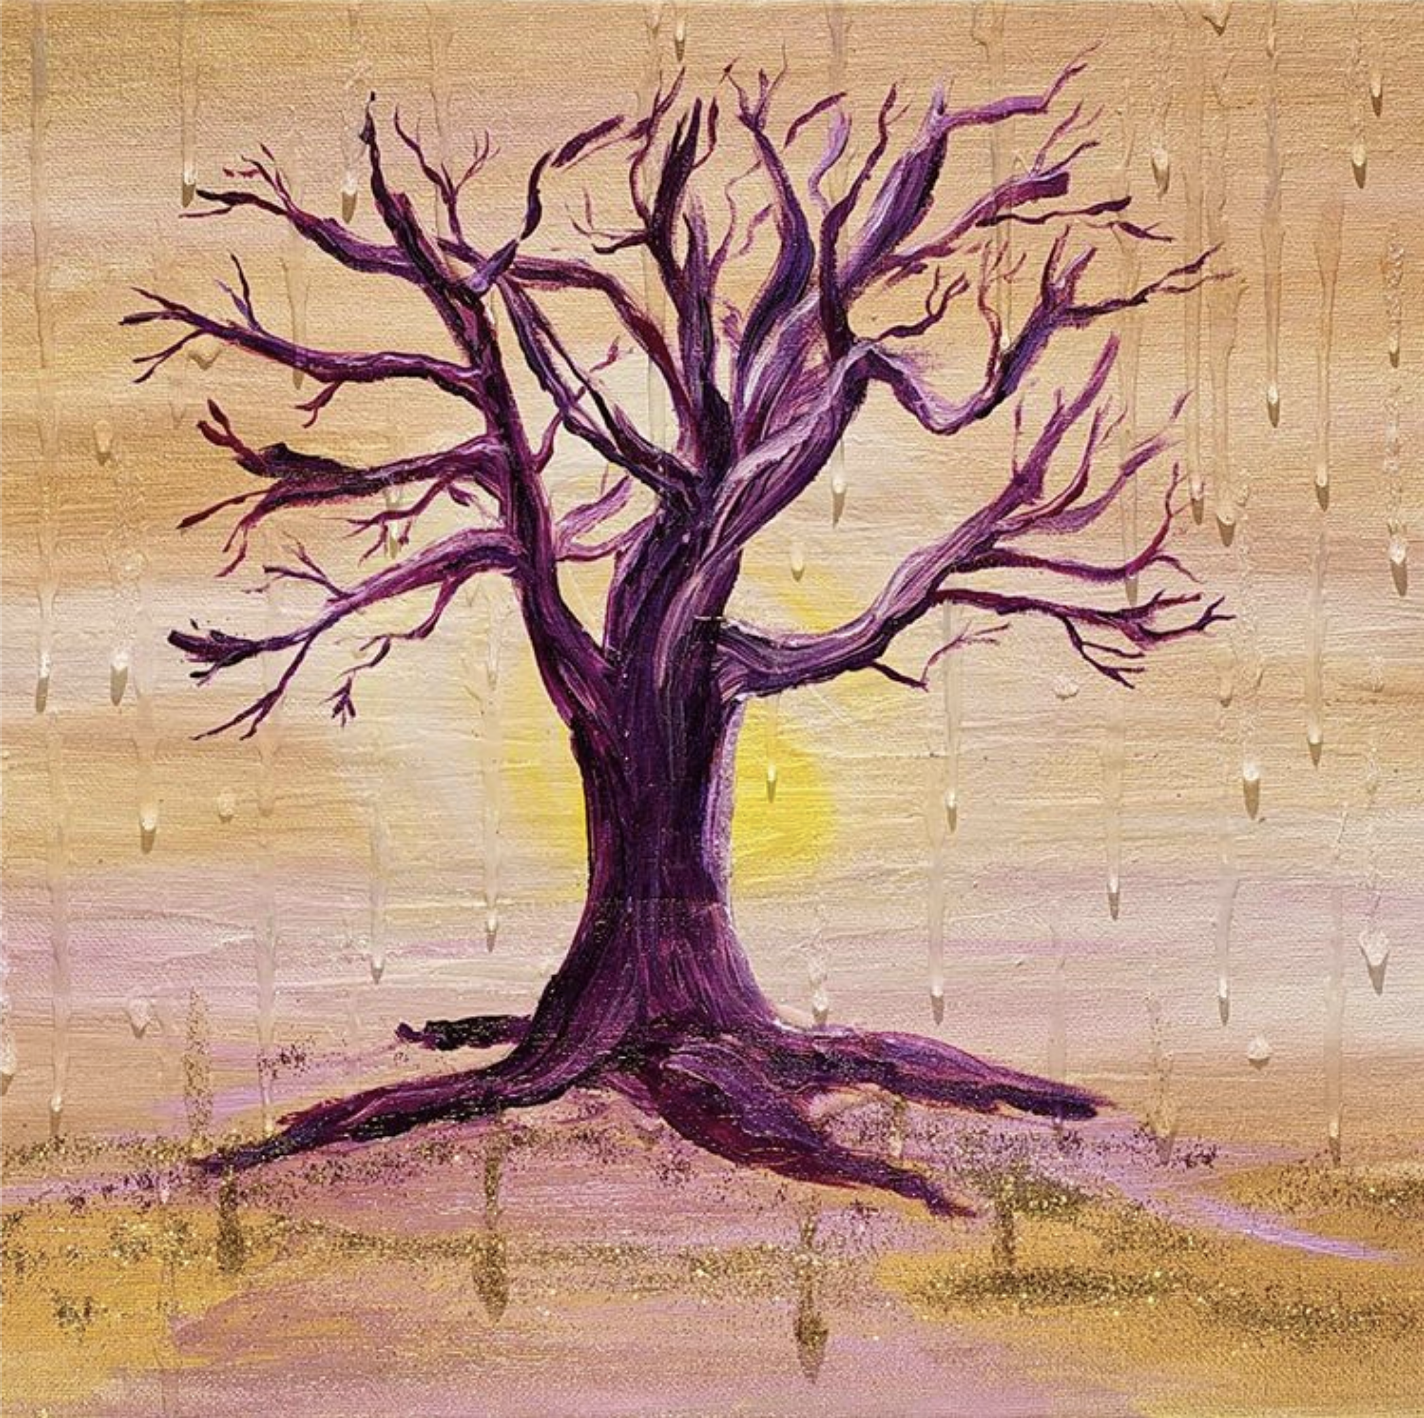 A fig tree painted in purple on a beige background